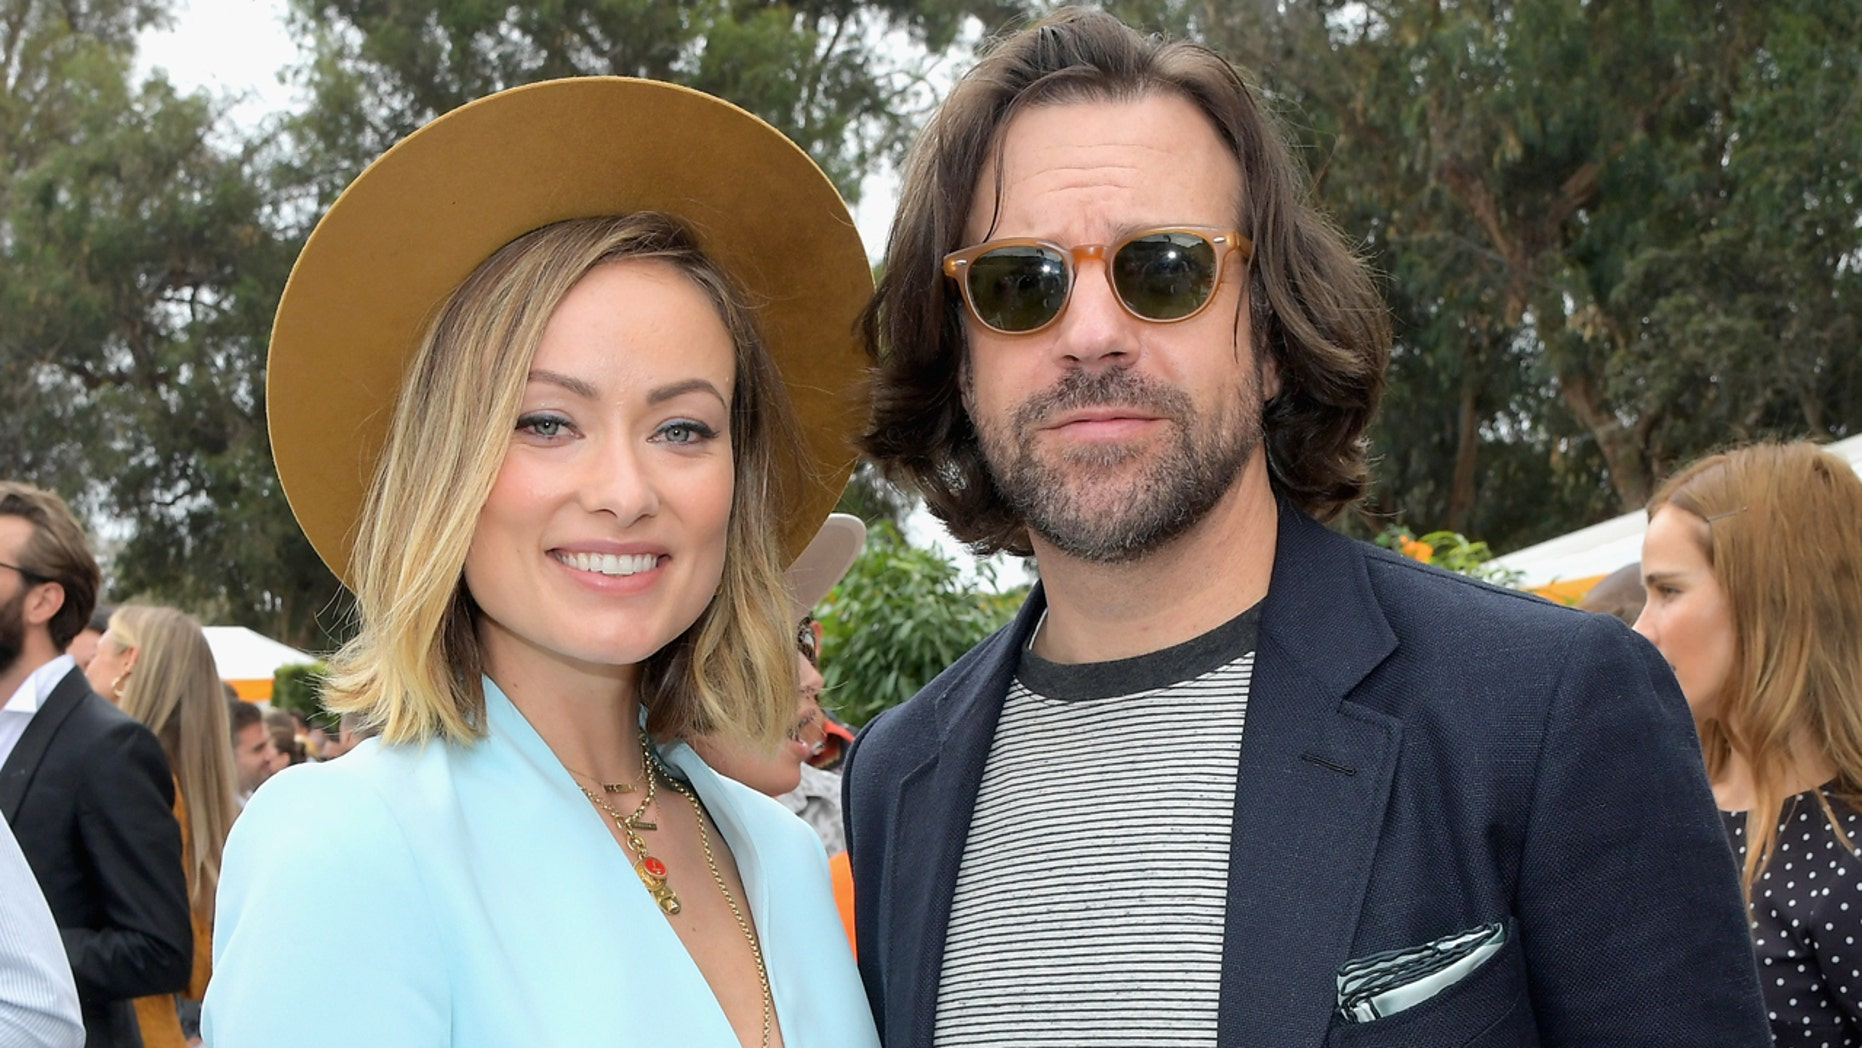 Olivia Wilde and Jason Sudeikis appeared at a campaign event for her mother.